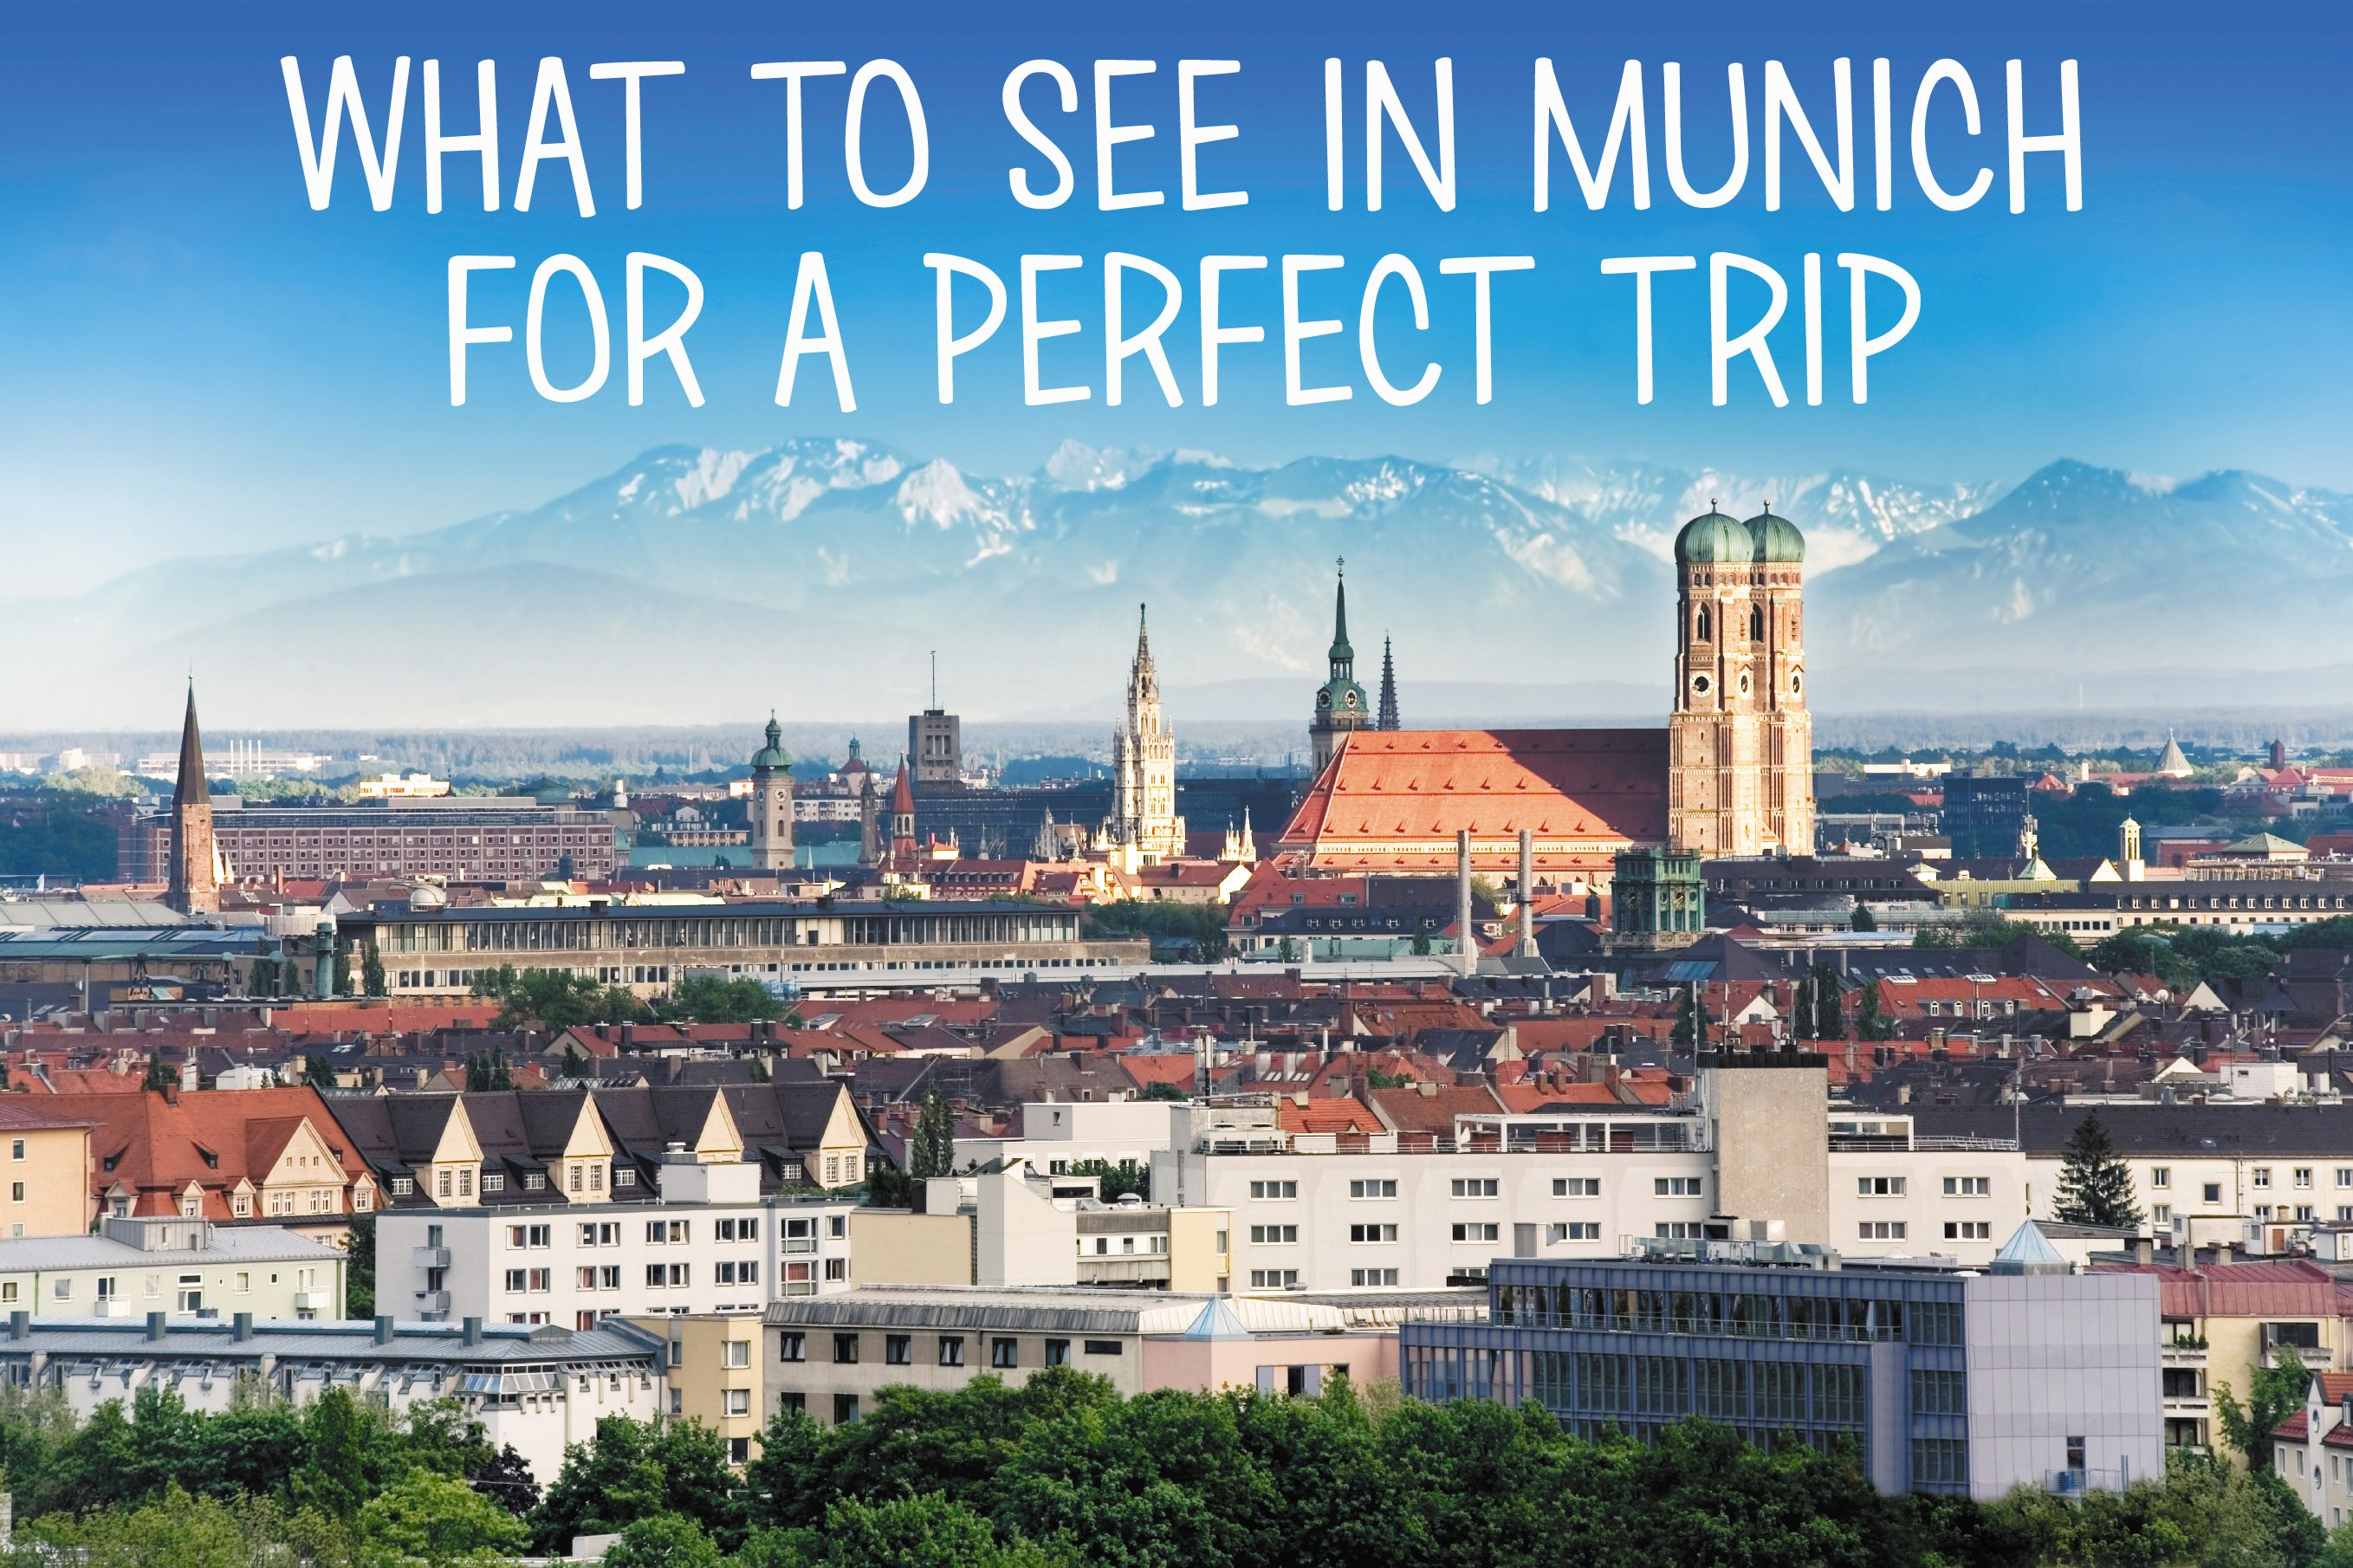 What to see in Munich for a perfect trip!